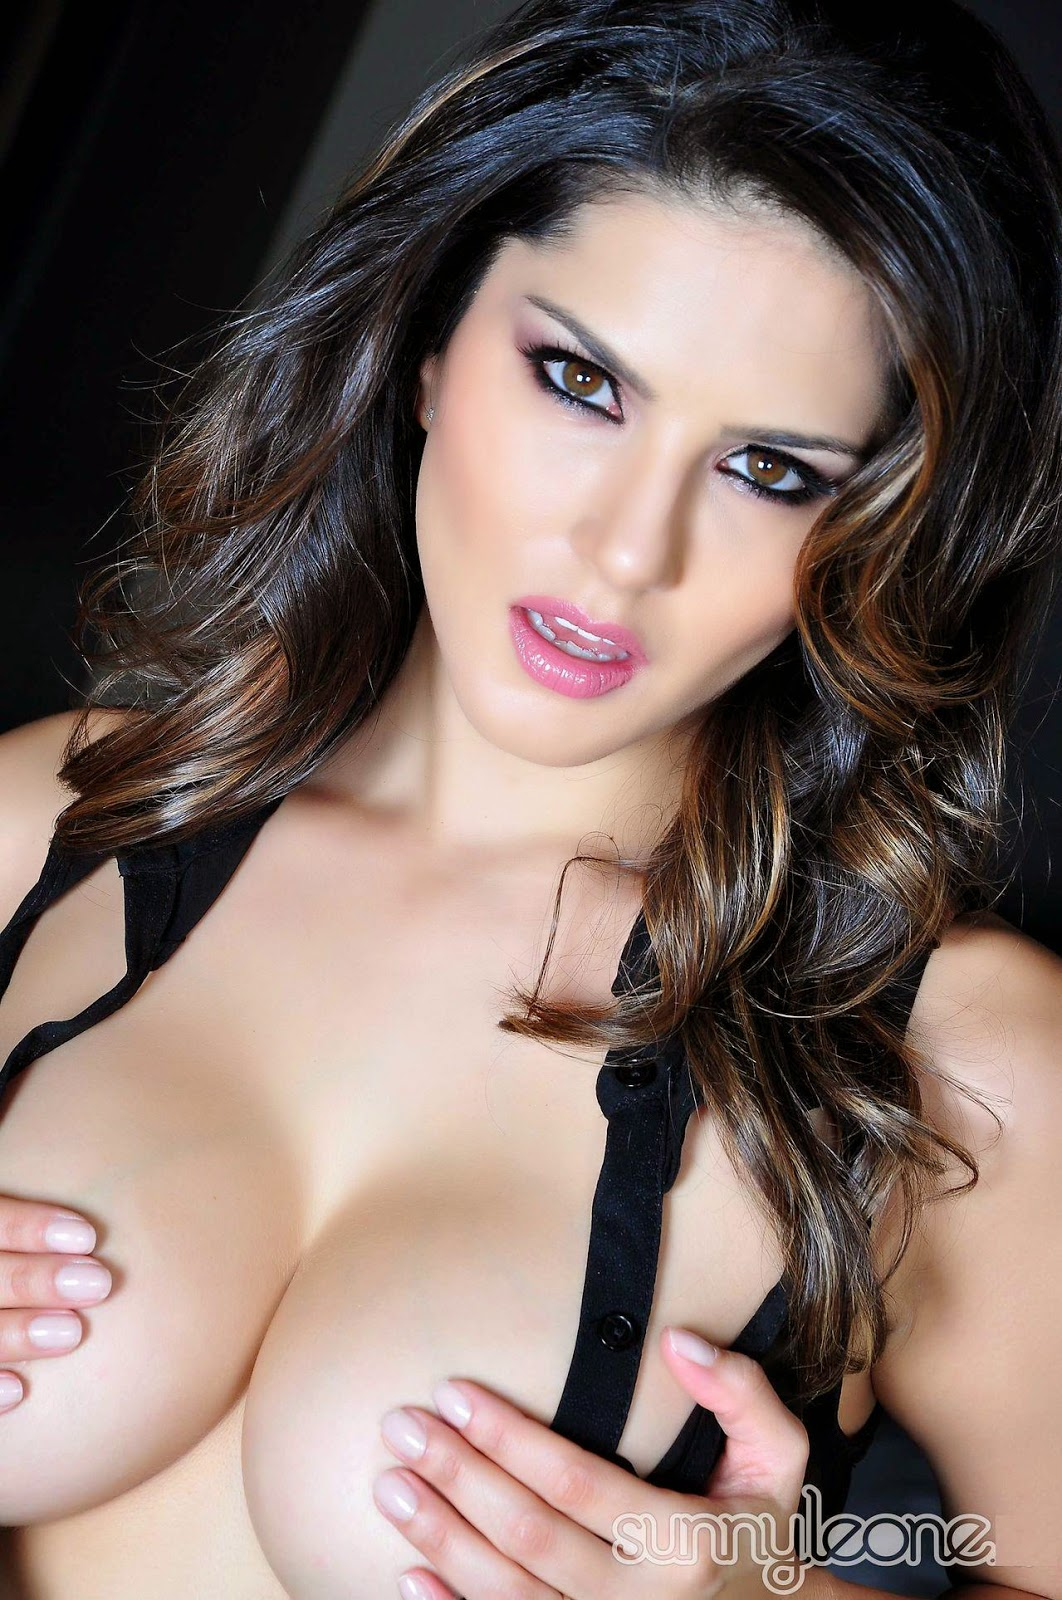 Sunny leone hd images gallery